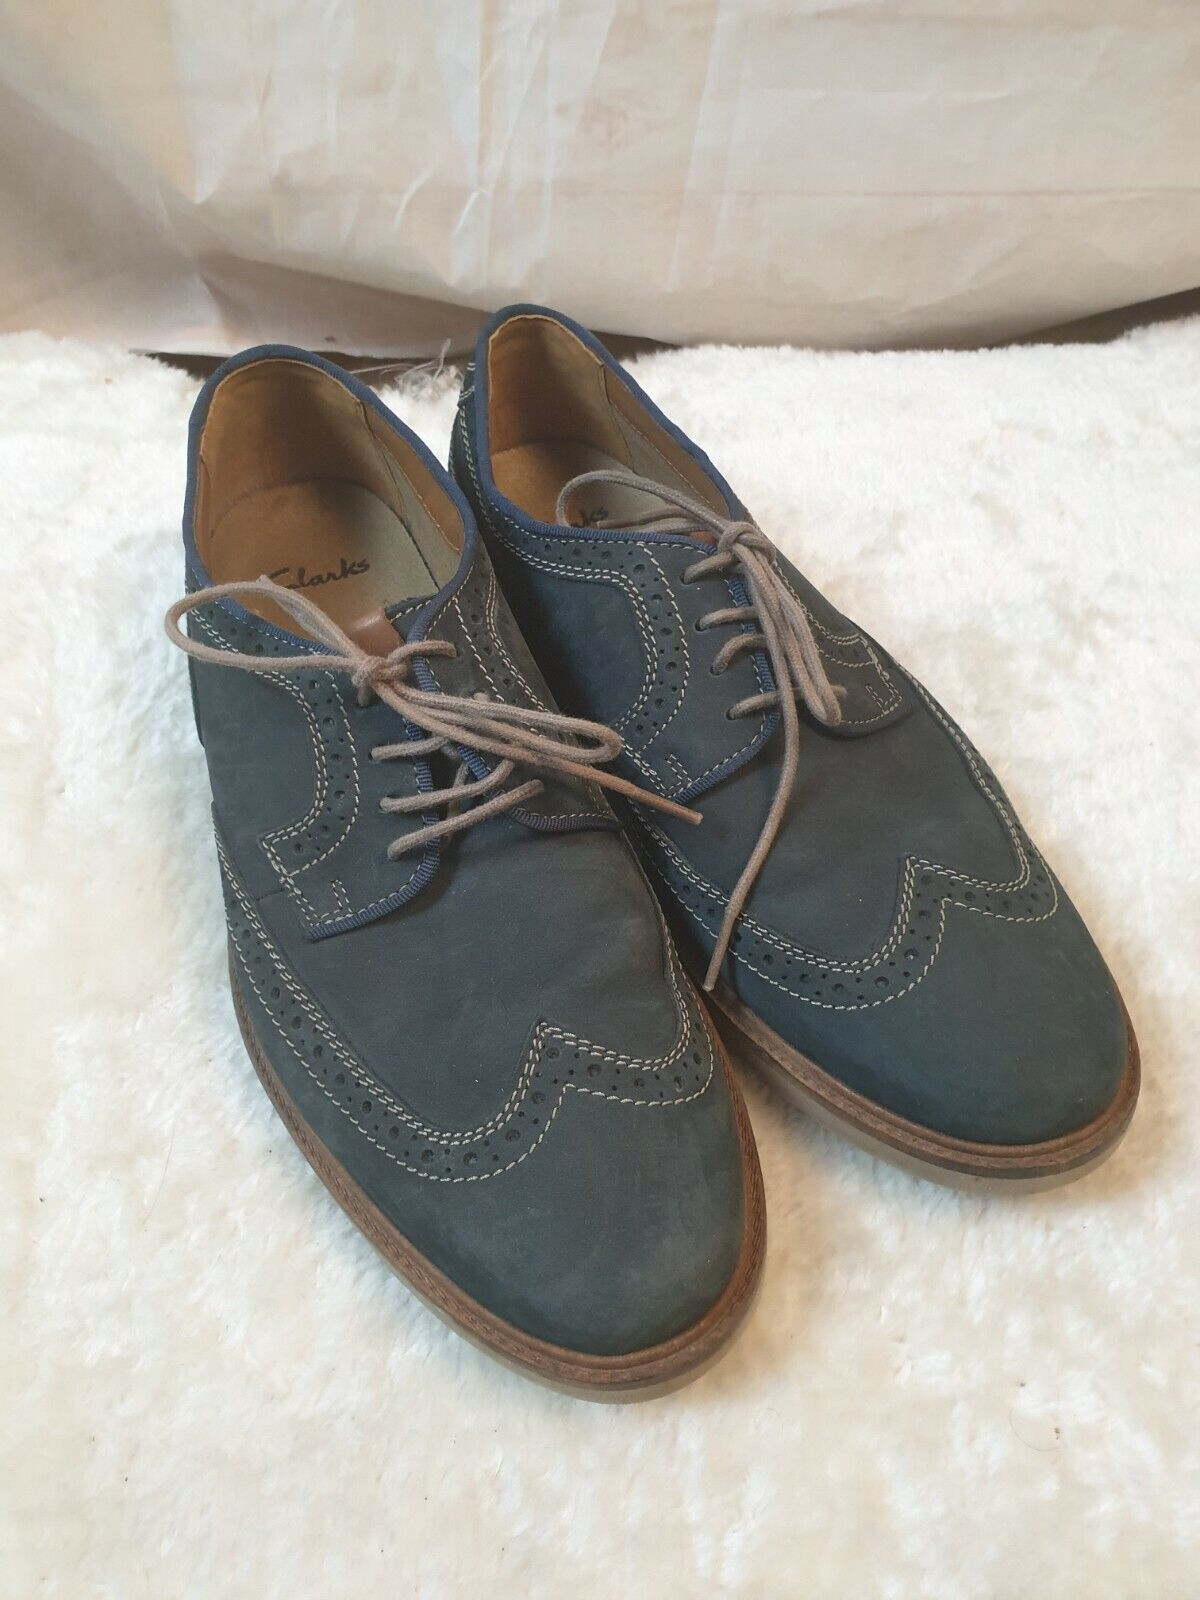 Clarks Blue Suede Round Toe Lace Up Shoes Size 42.5 UK 8.5 G